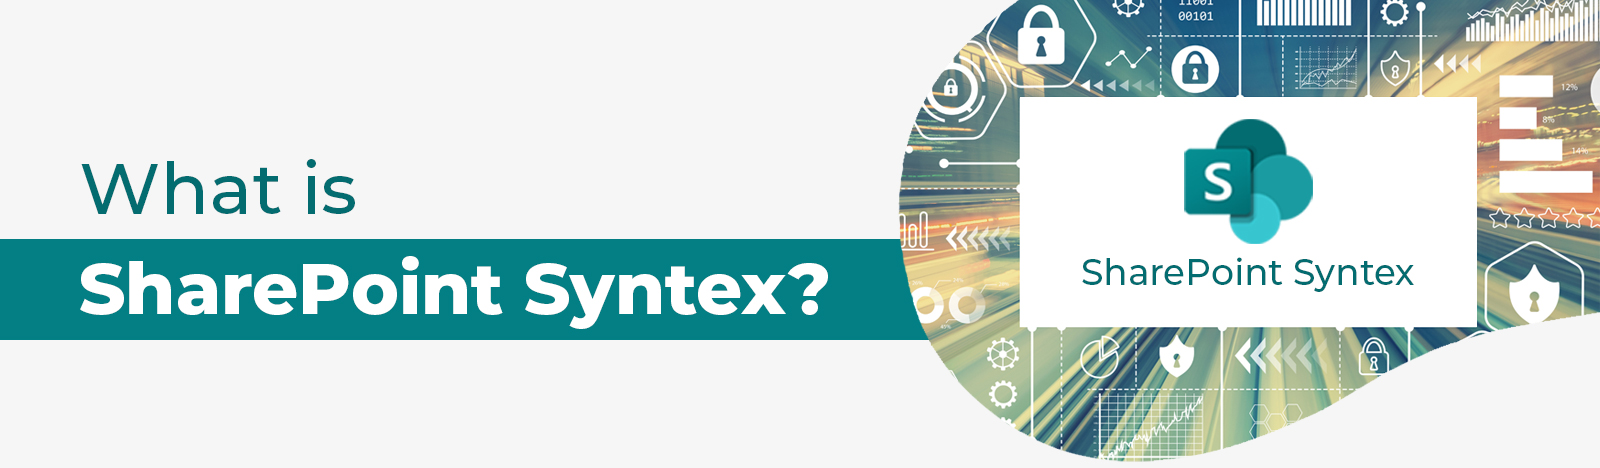 What is SharePoint Syntex?